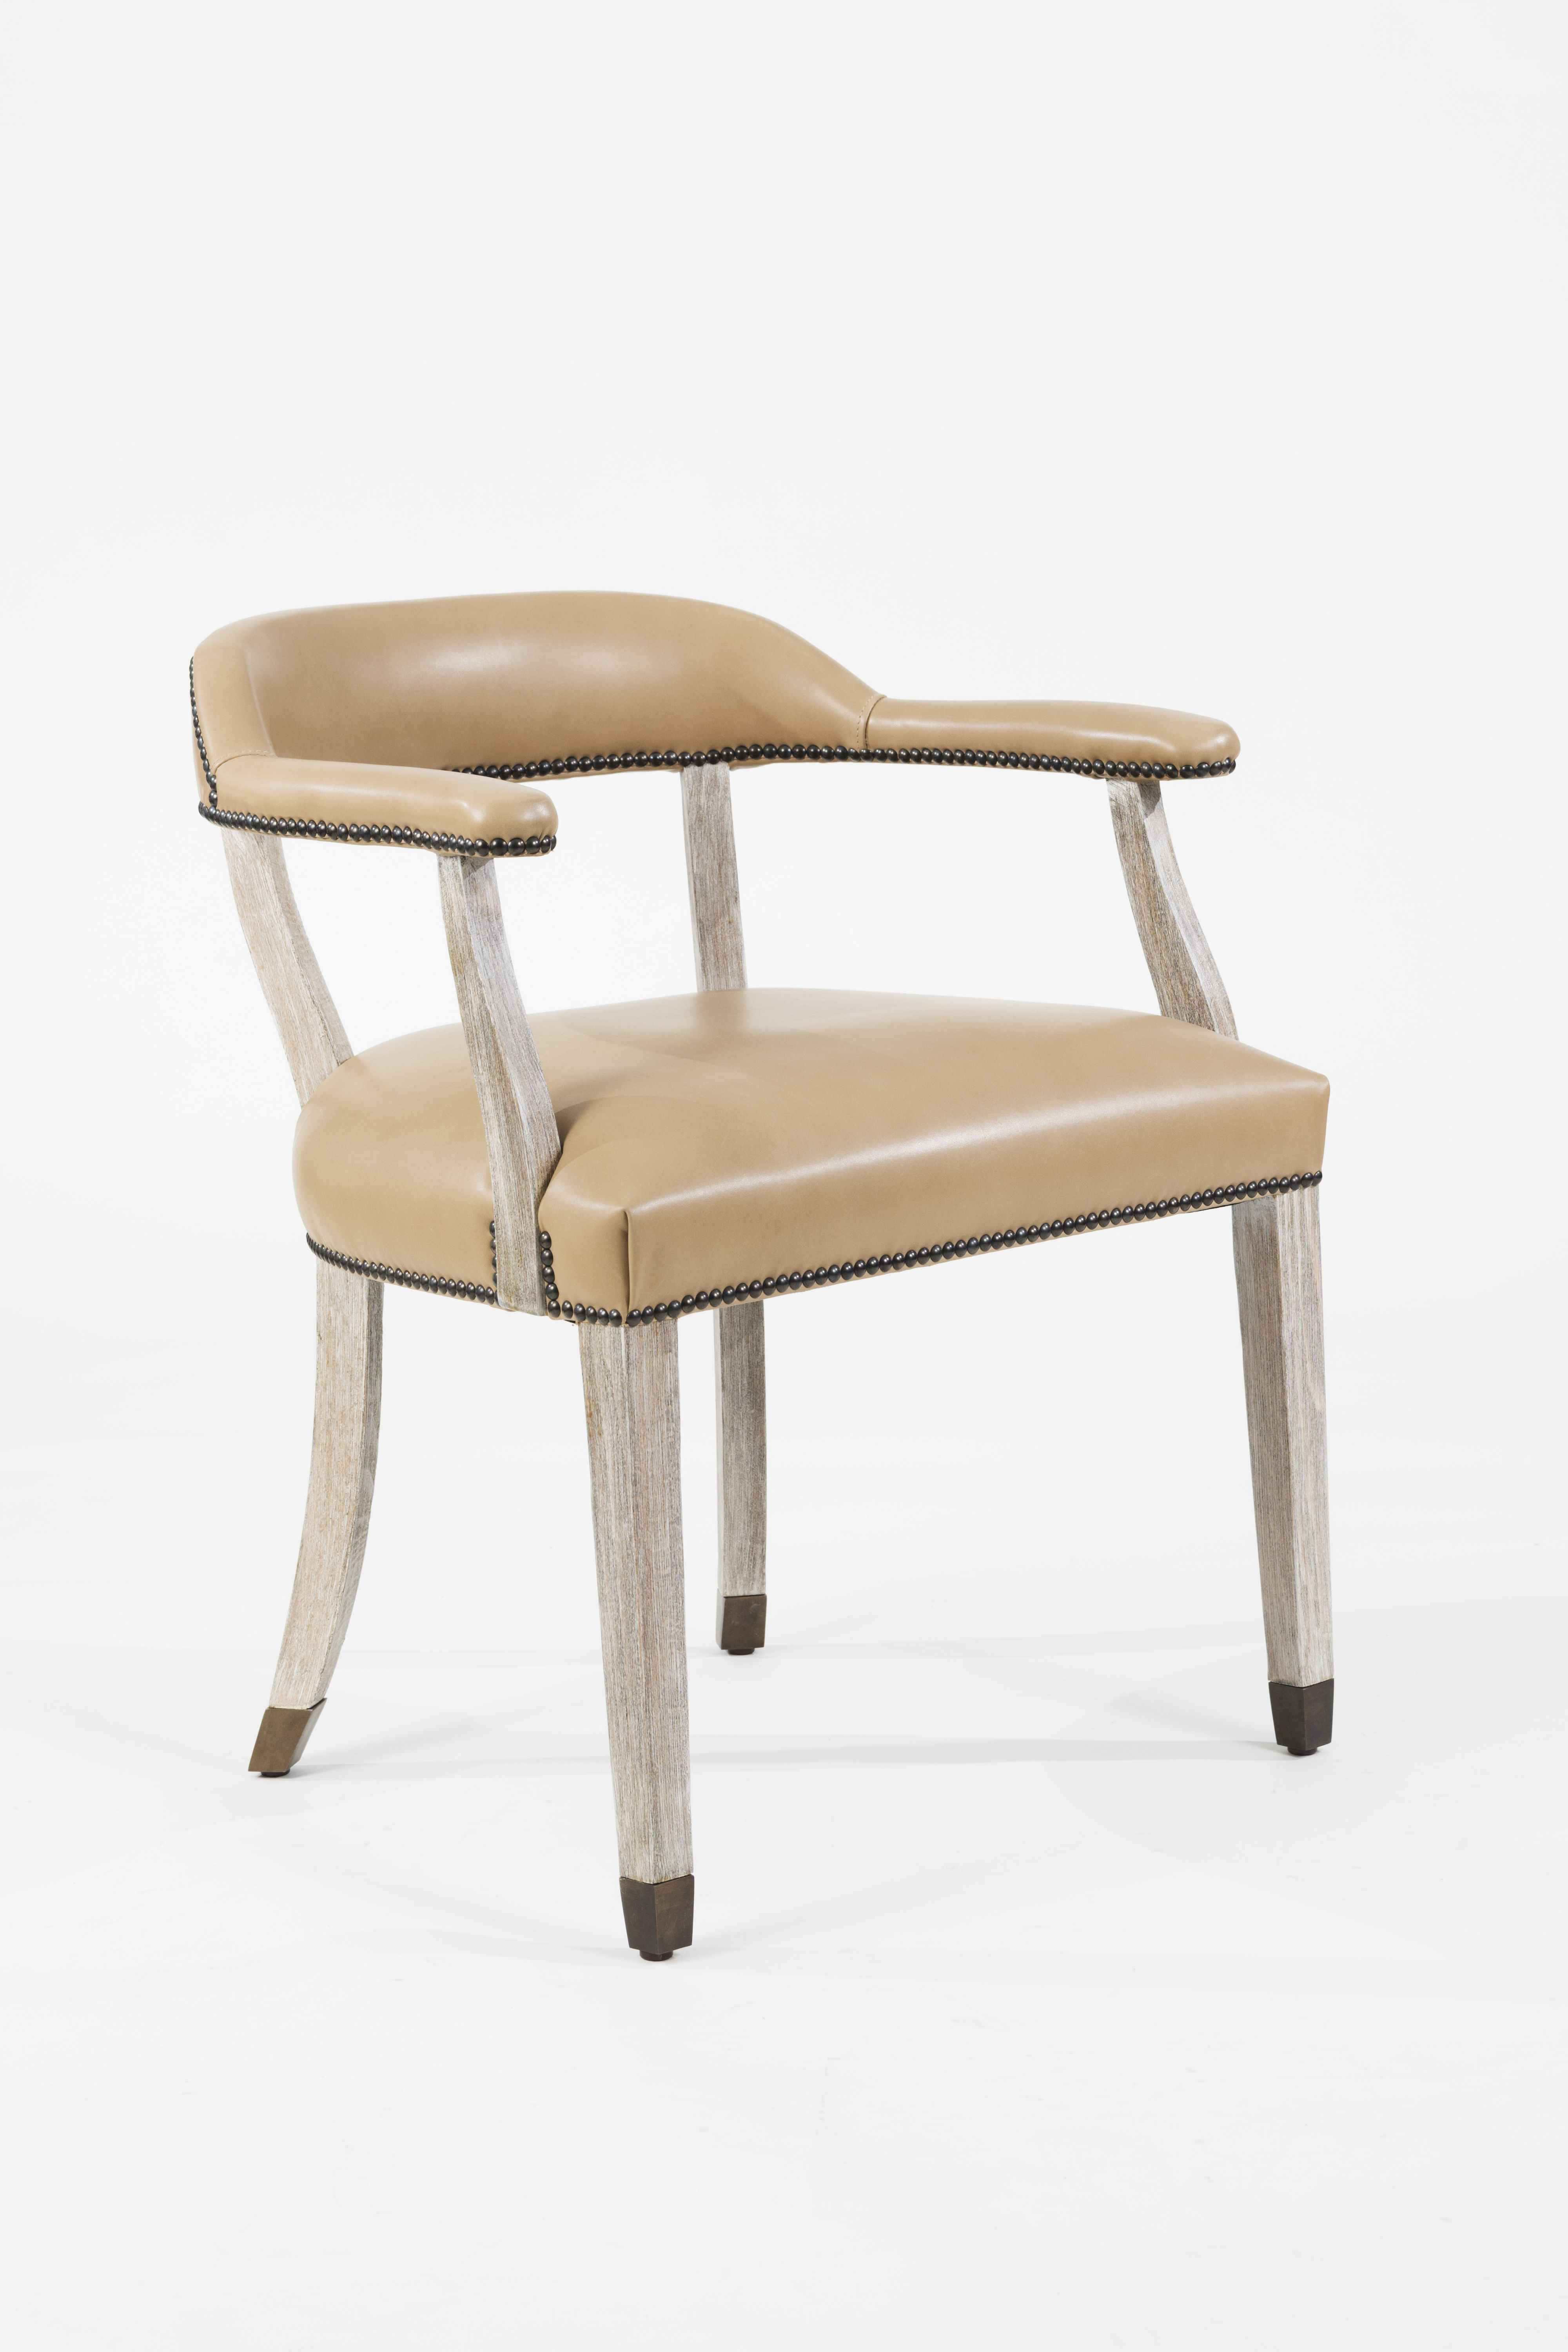 Custom Upholstered Dining Chair With Antique Brass Foot Caps And Nailhead  Trim On Arms, Back